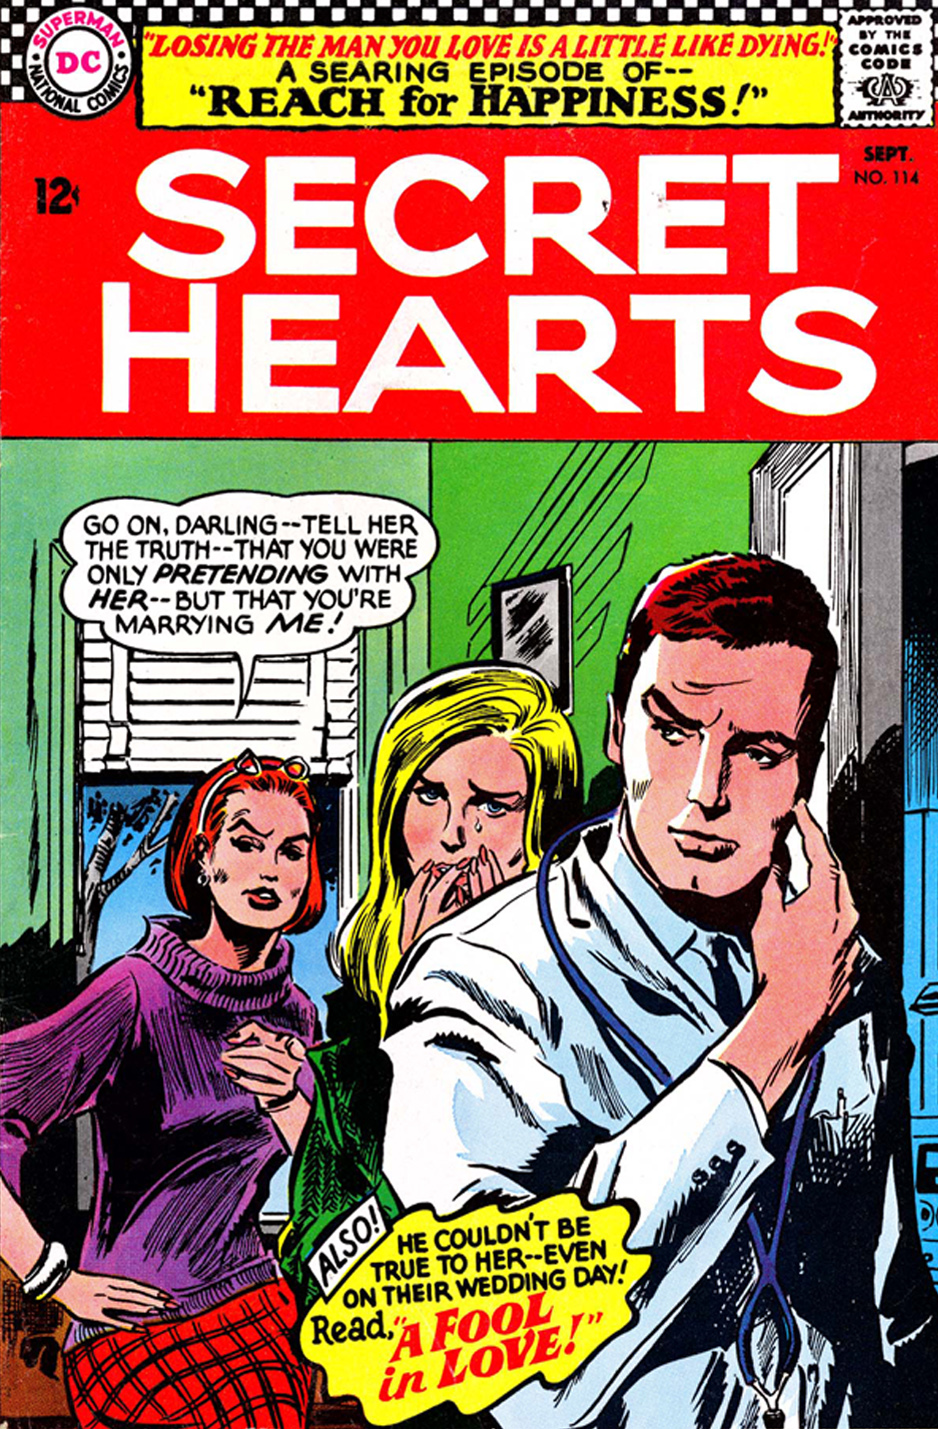 Secret Hearts Reach for Happiness Romance comic book serial soap opera